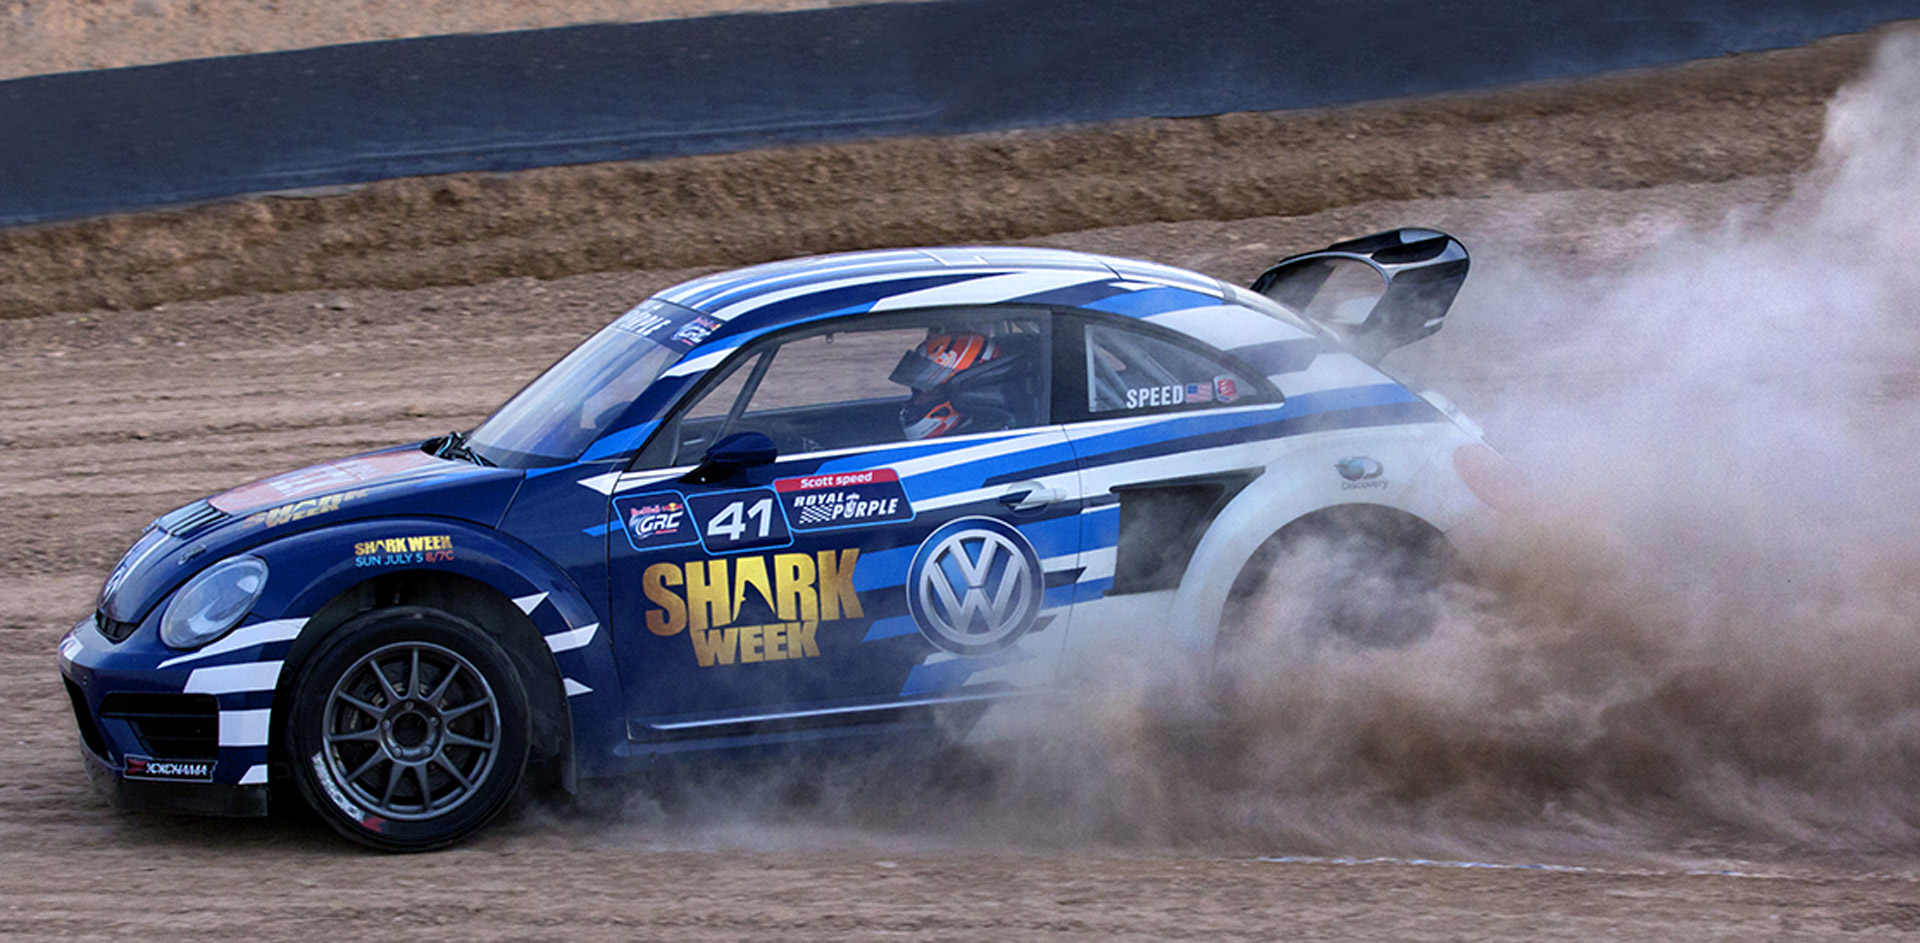 Scott Speed Gears Up For New Season Of Grc With Shark Week